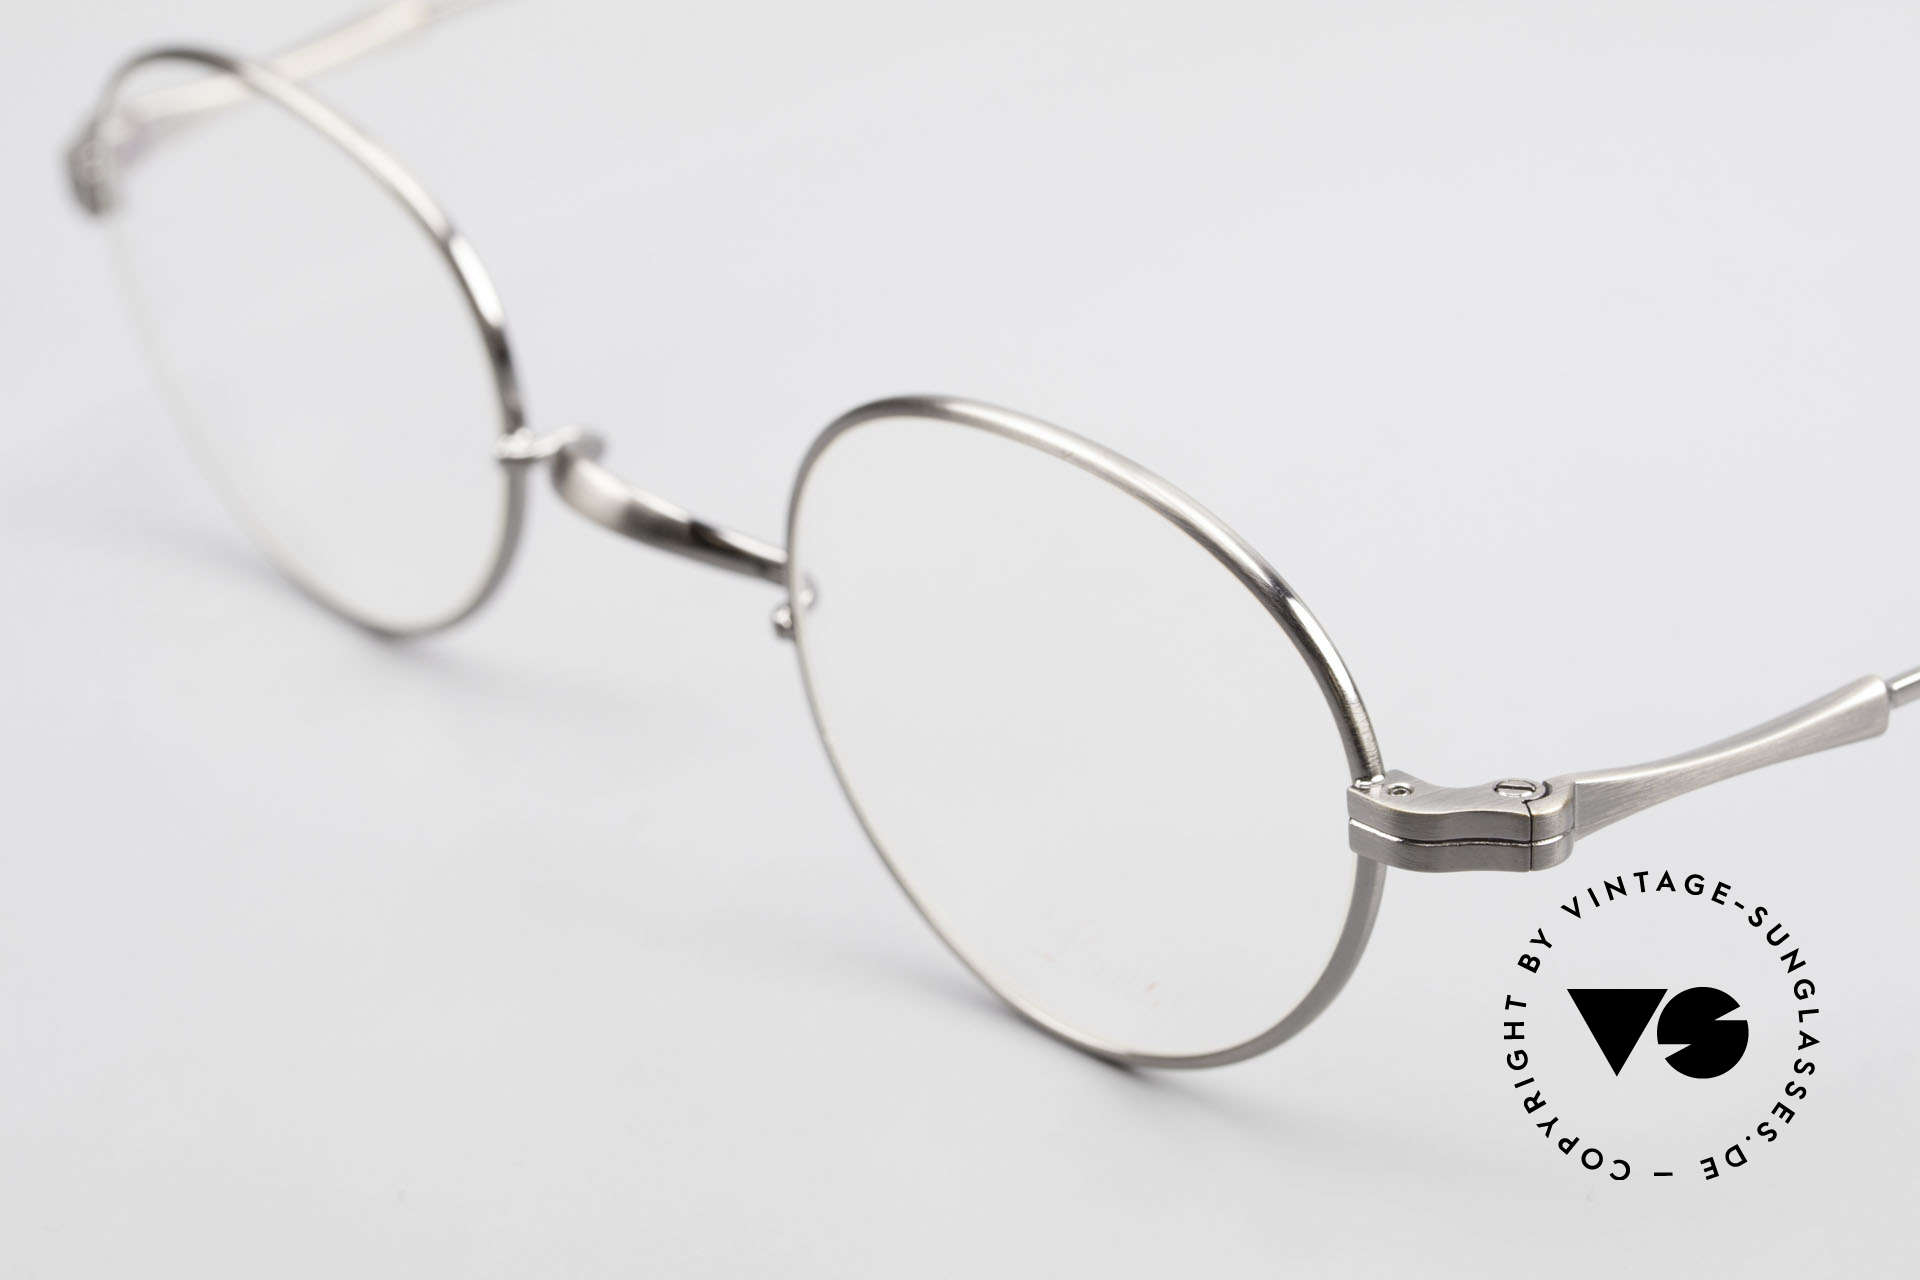 Lunor II 21 Metal Frame Anatomic Bridge, this is model II 21 in antique silver with anatomic bridge, Made for Men and Women